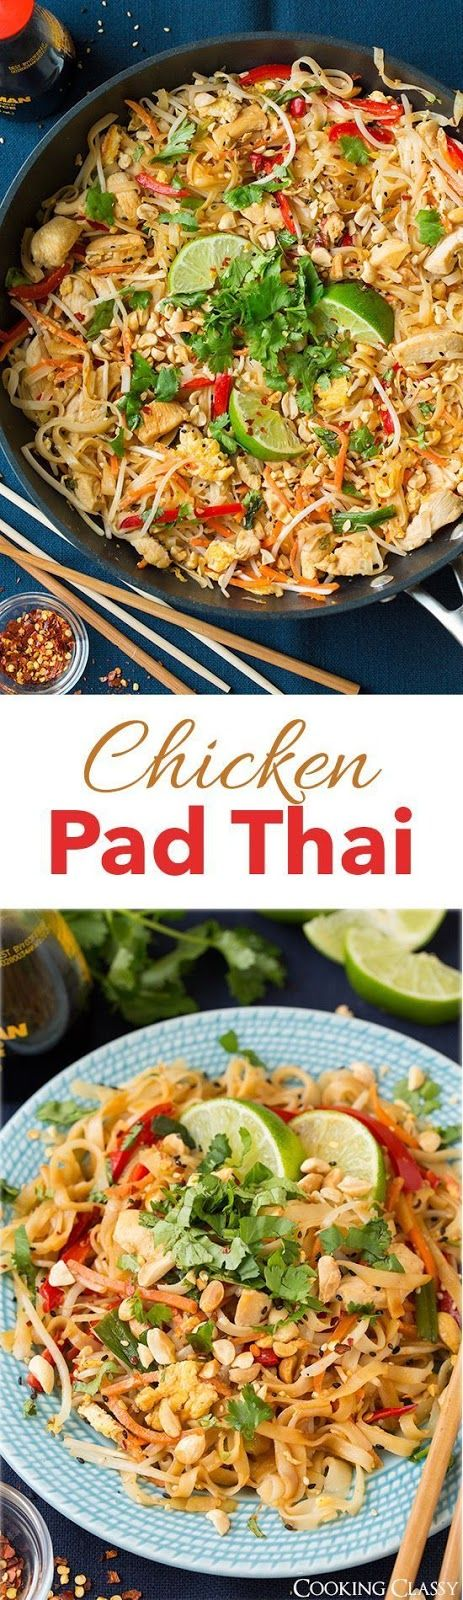 Chicken Pad Thai Recipes Asian Recipes Cooking